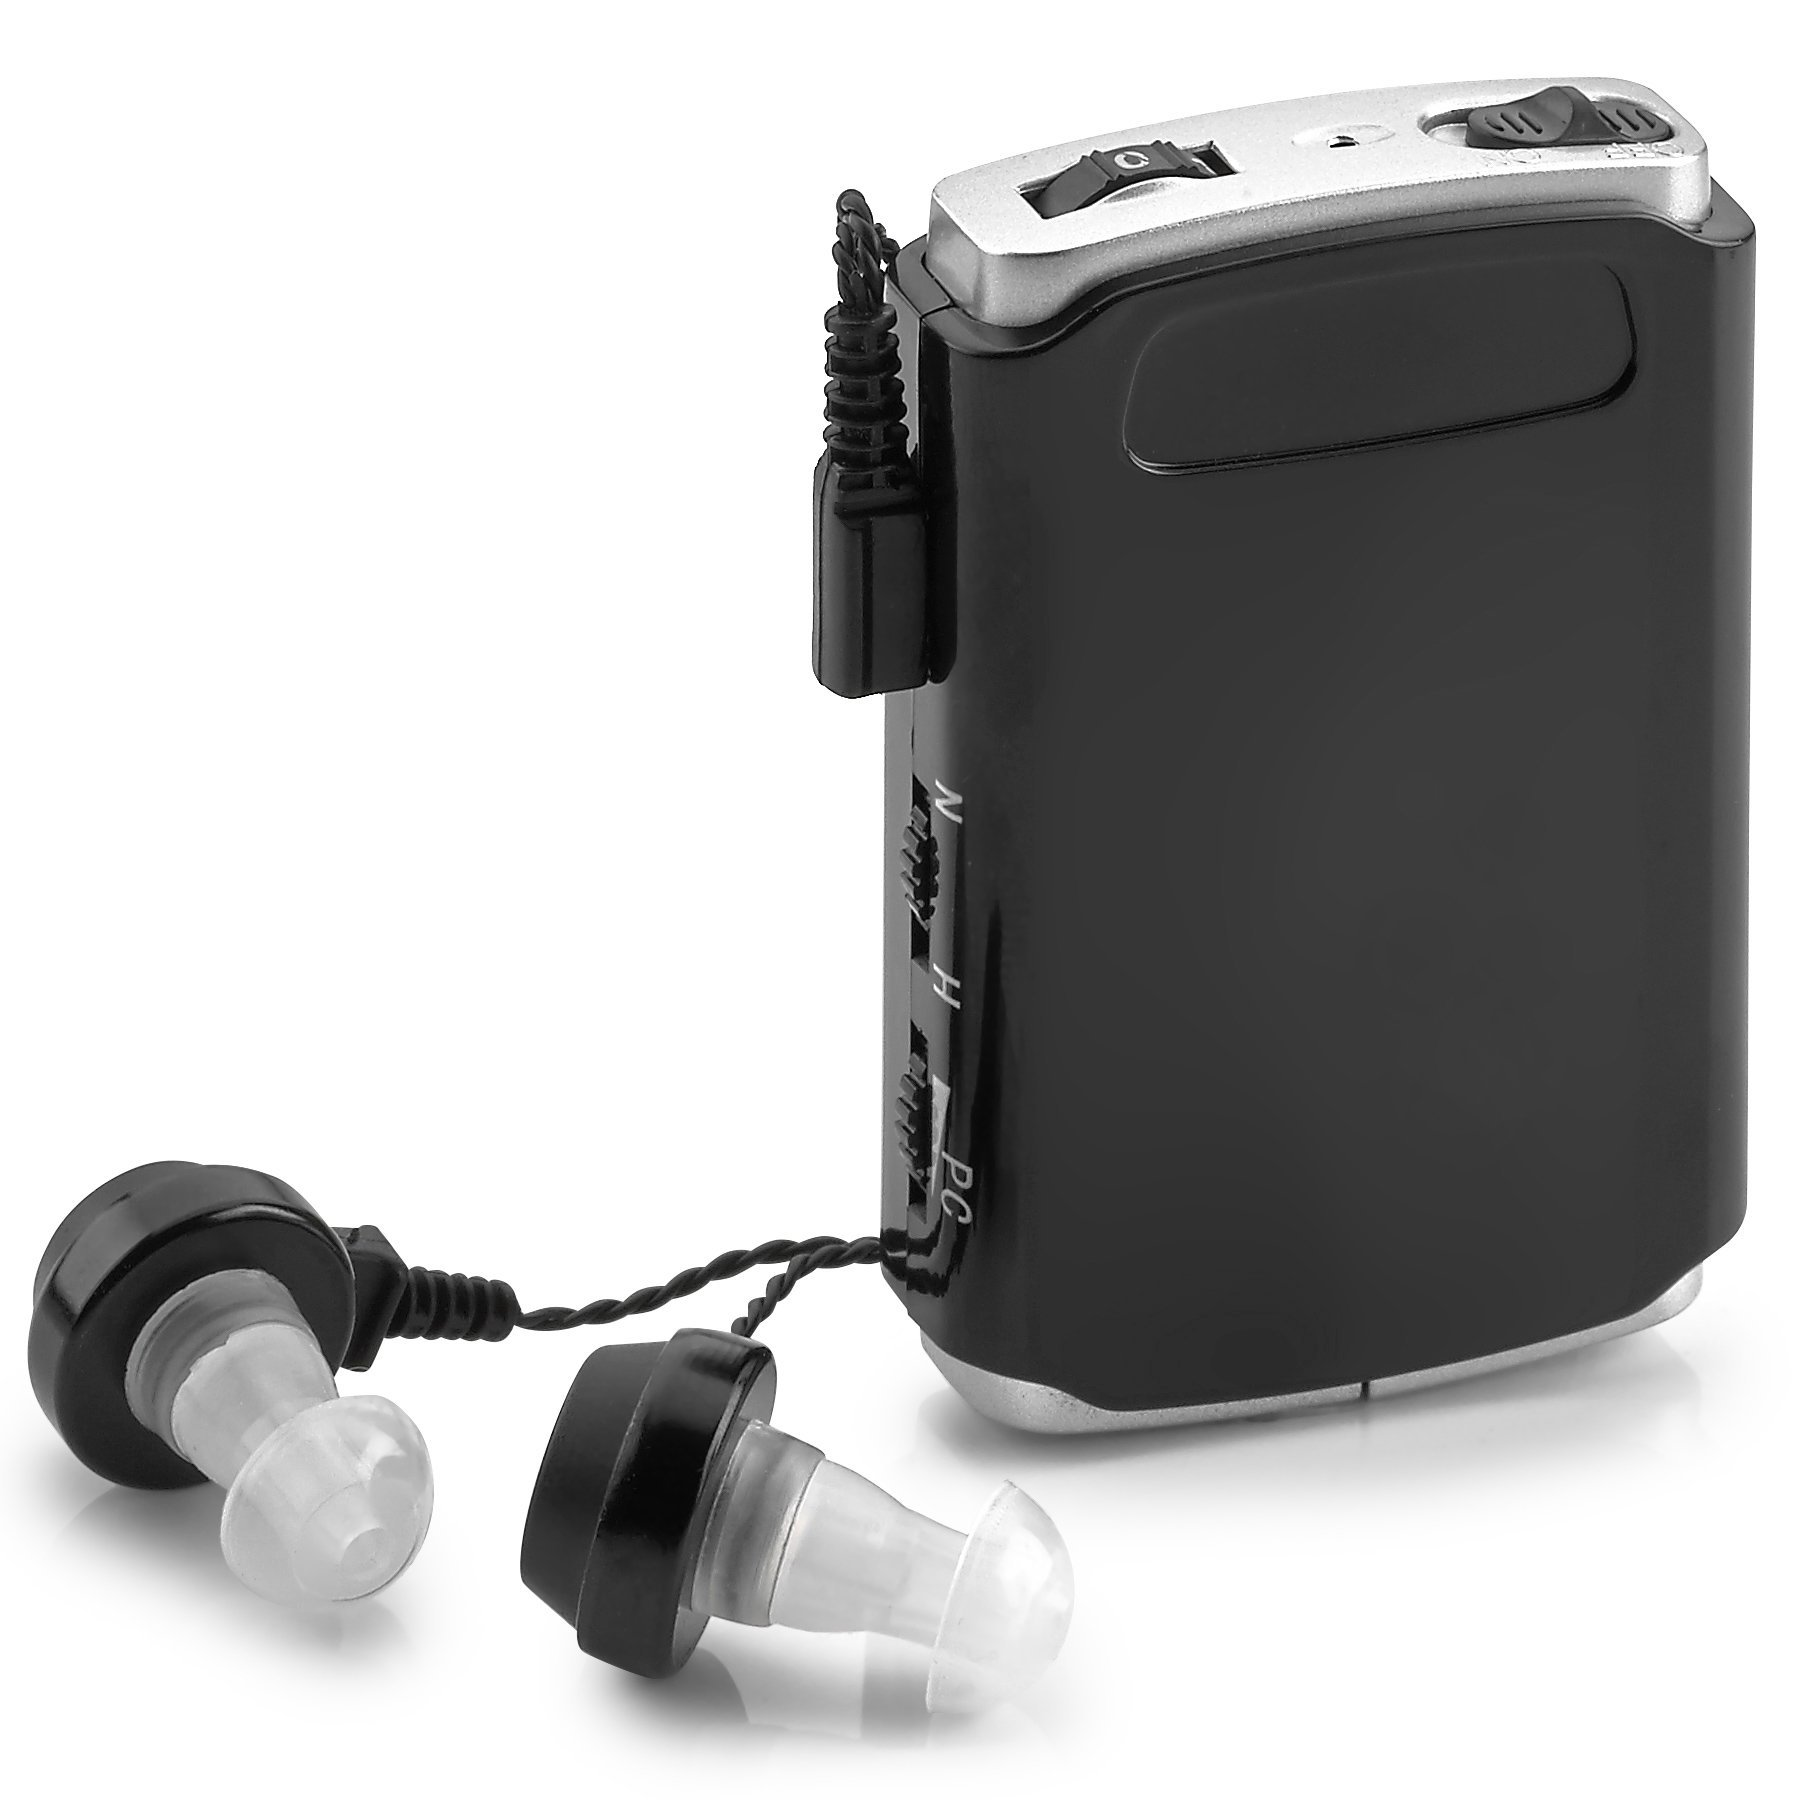 Sound Amplifier - Pocket Sound Voice Enhancer Device with Duo Mic/Ear Plus Extra Headphone and Microphone Set, Personal Hearing Amplifier Device for Hearing Impaired and Hard of Hearing by MEDca